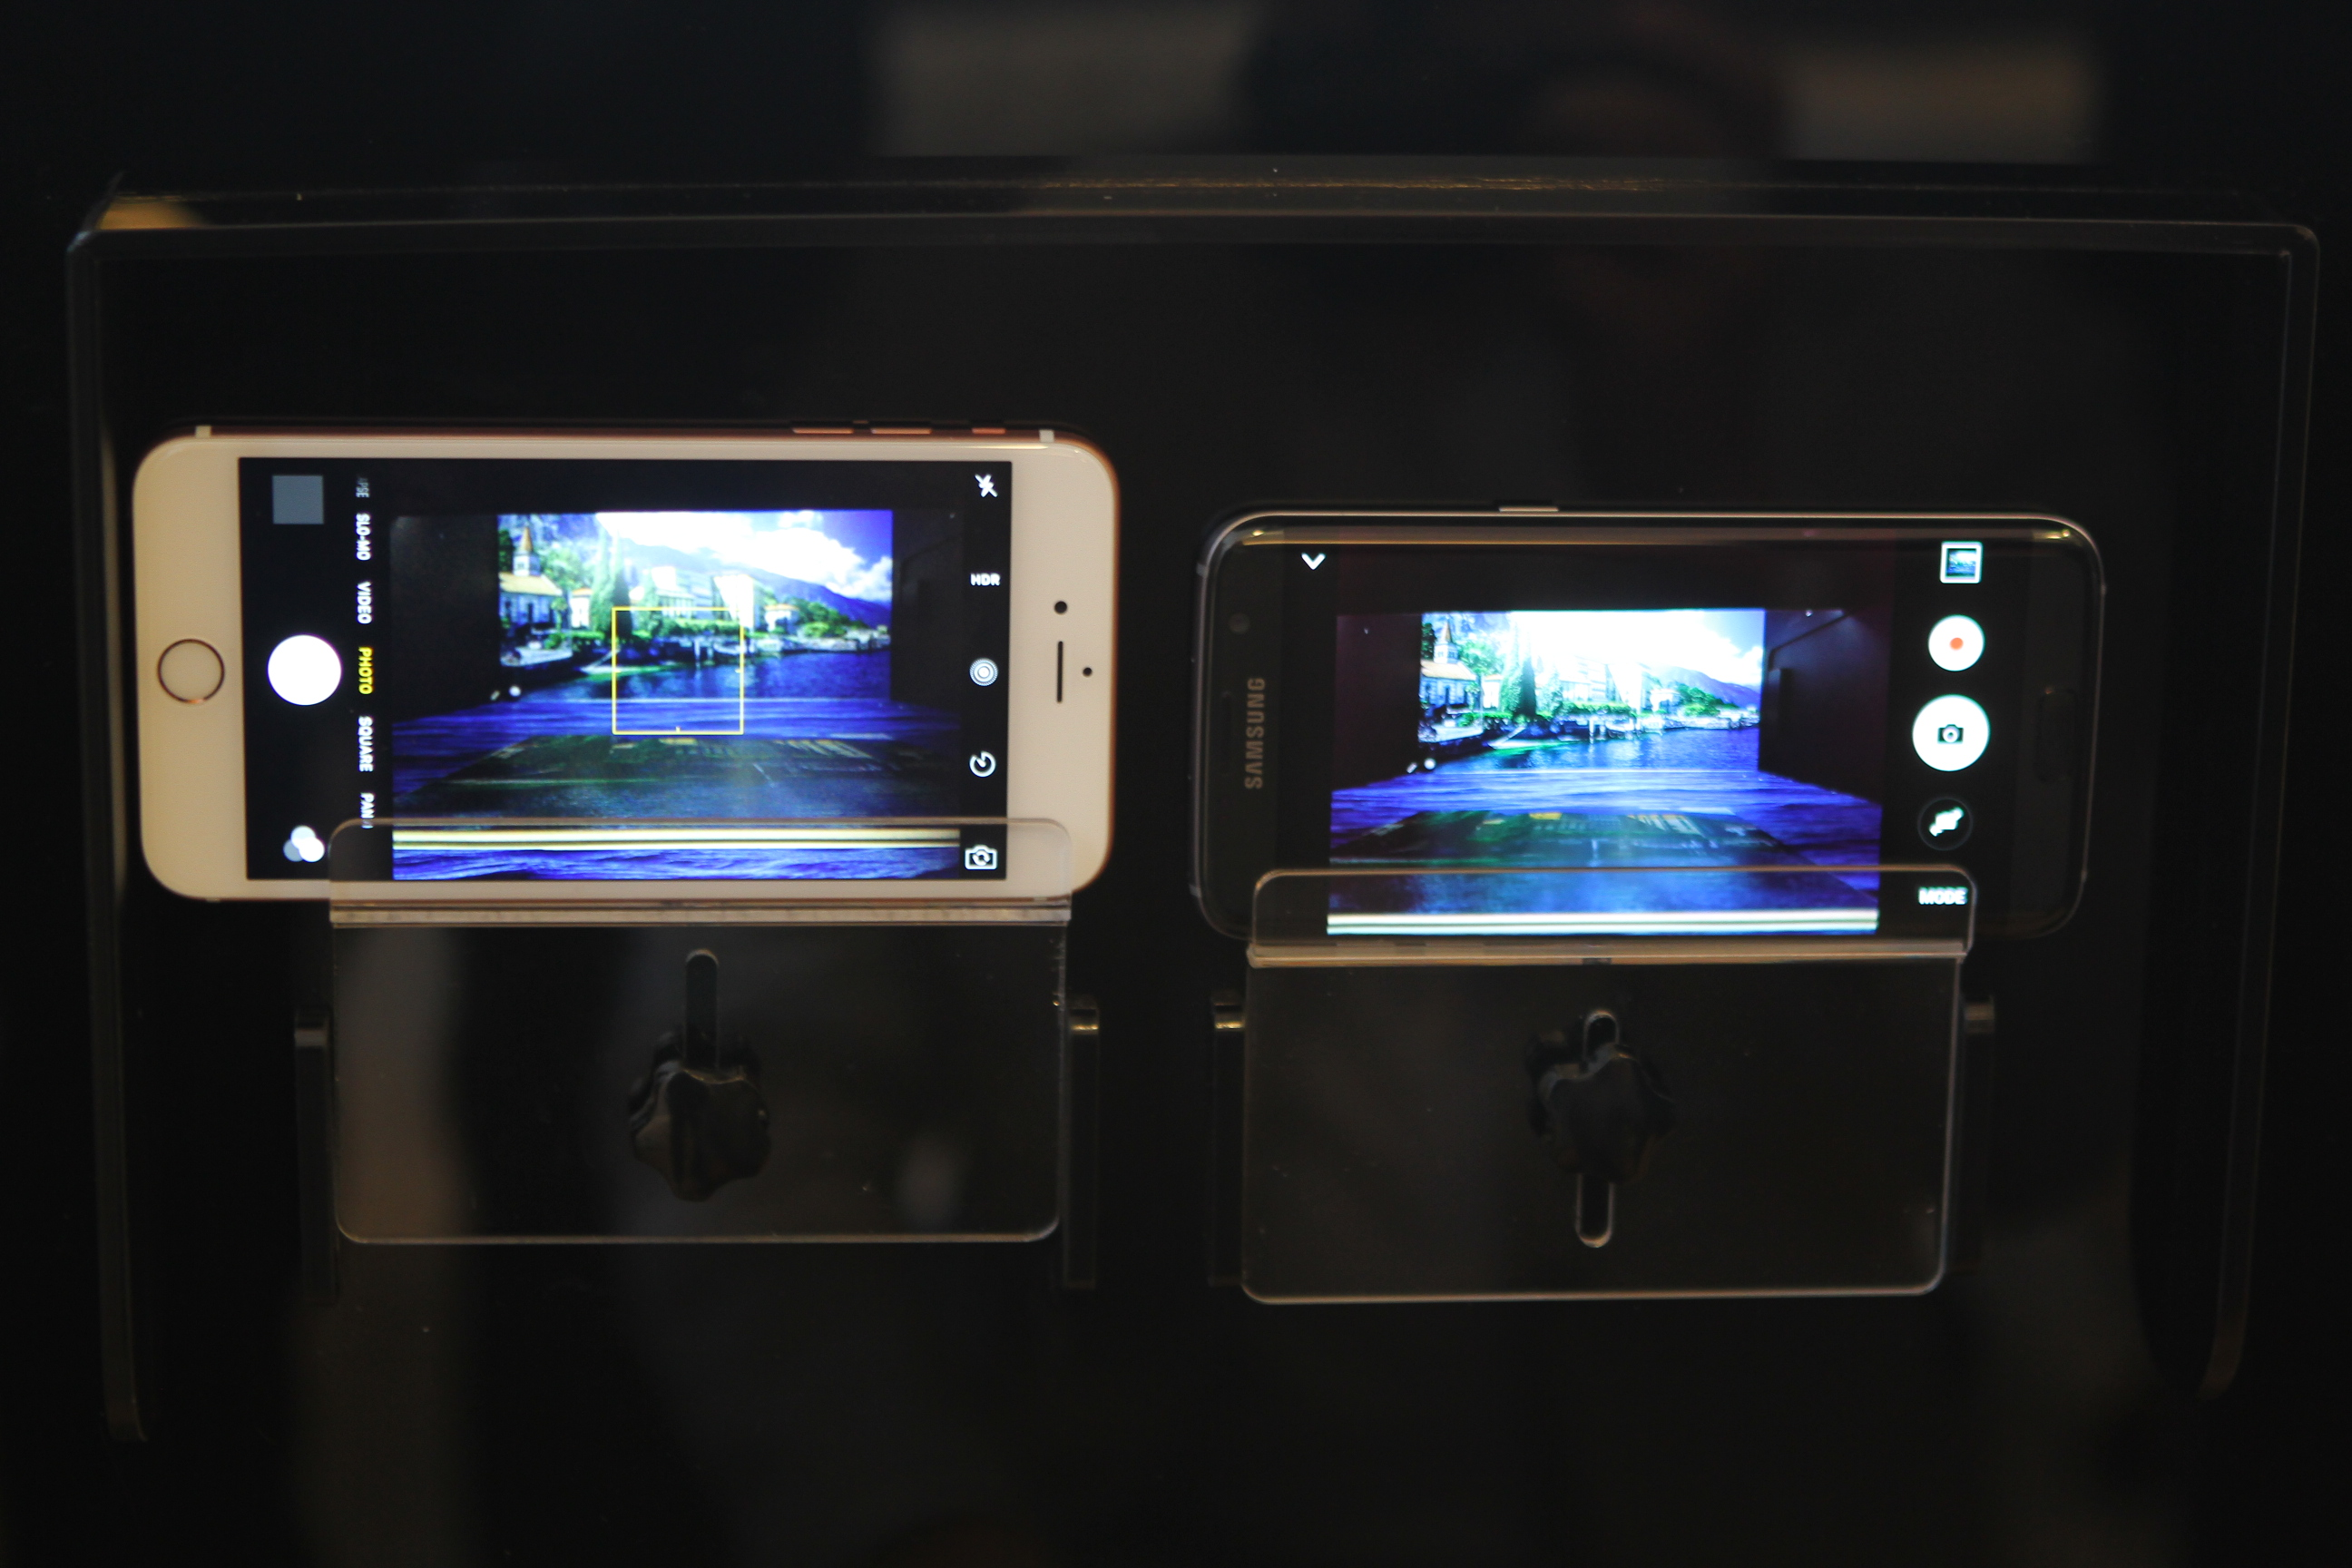 Samsung demonstrates the fast autofocus capability of its Galaxy S7 camera against the iPhone 6S Plus.